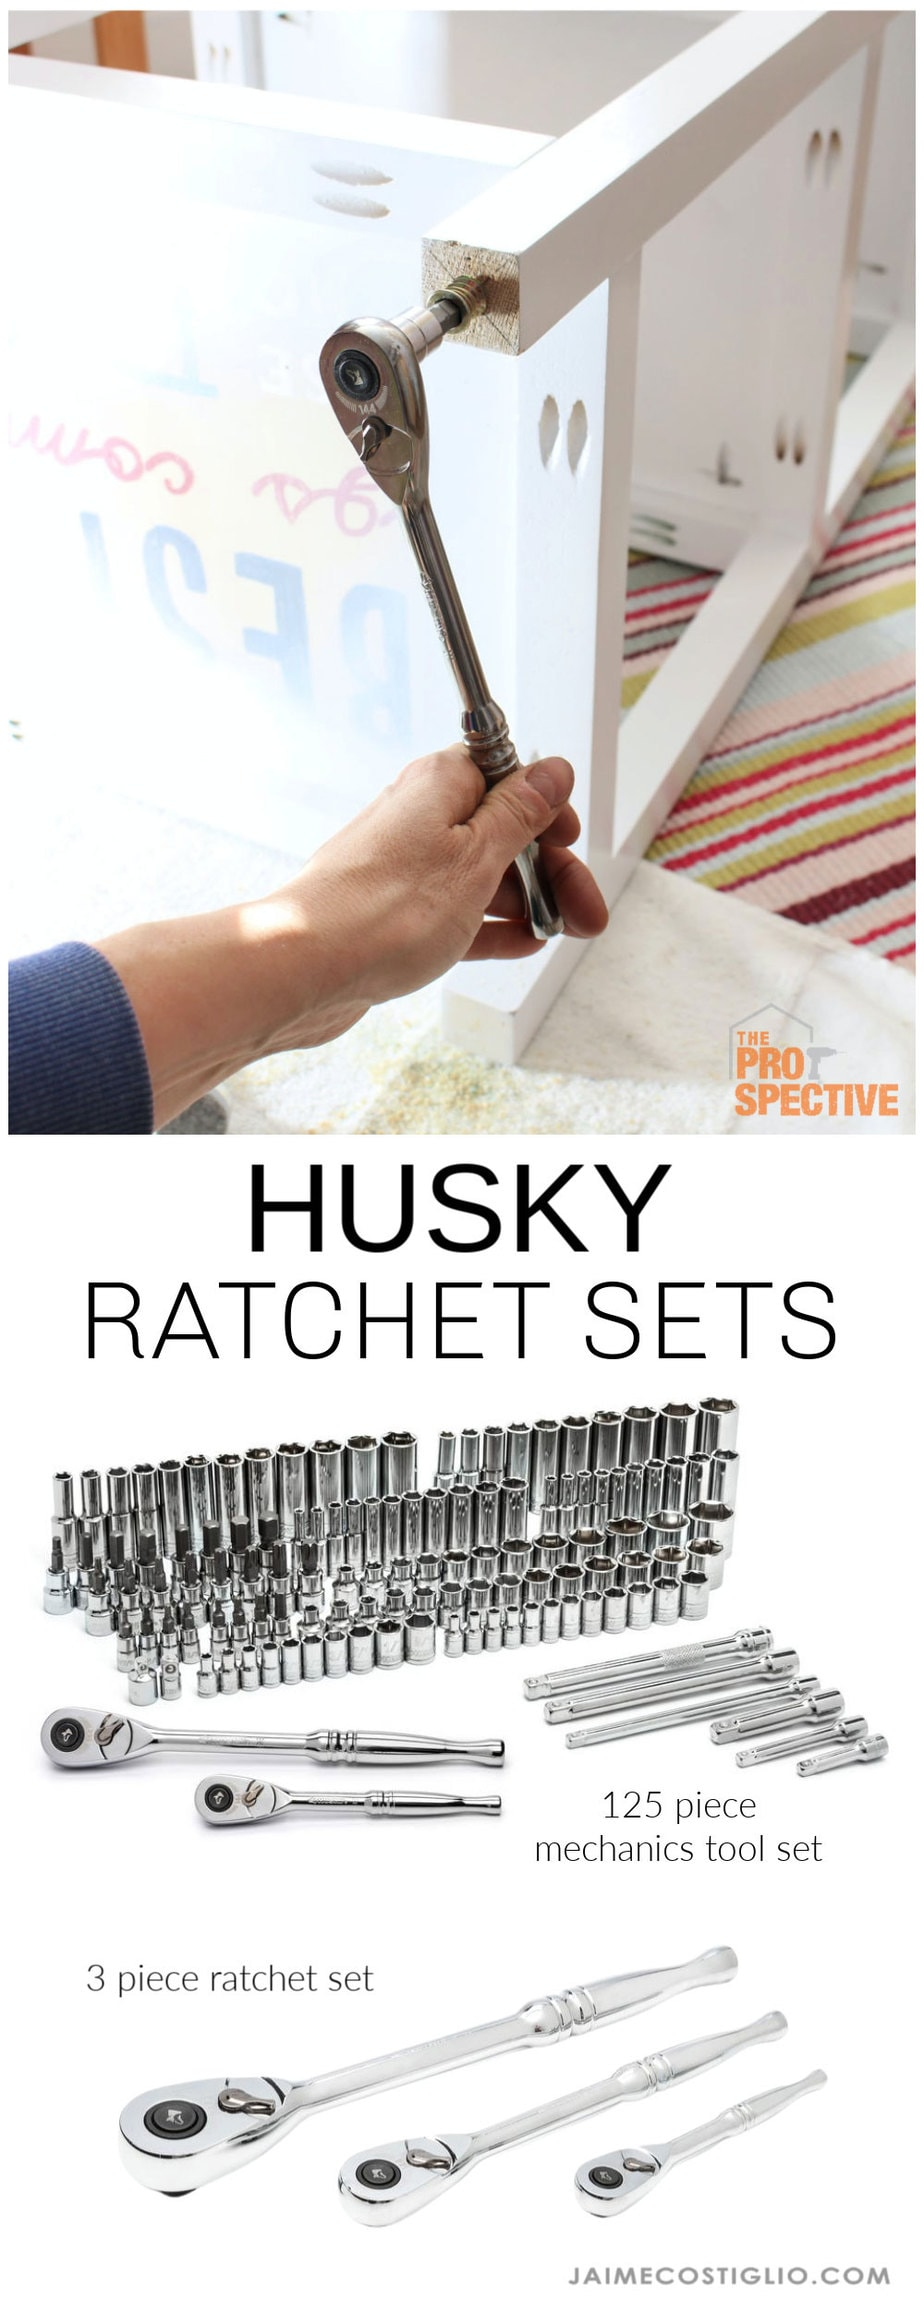 husky ratchet sets